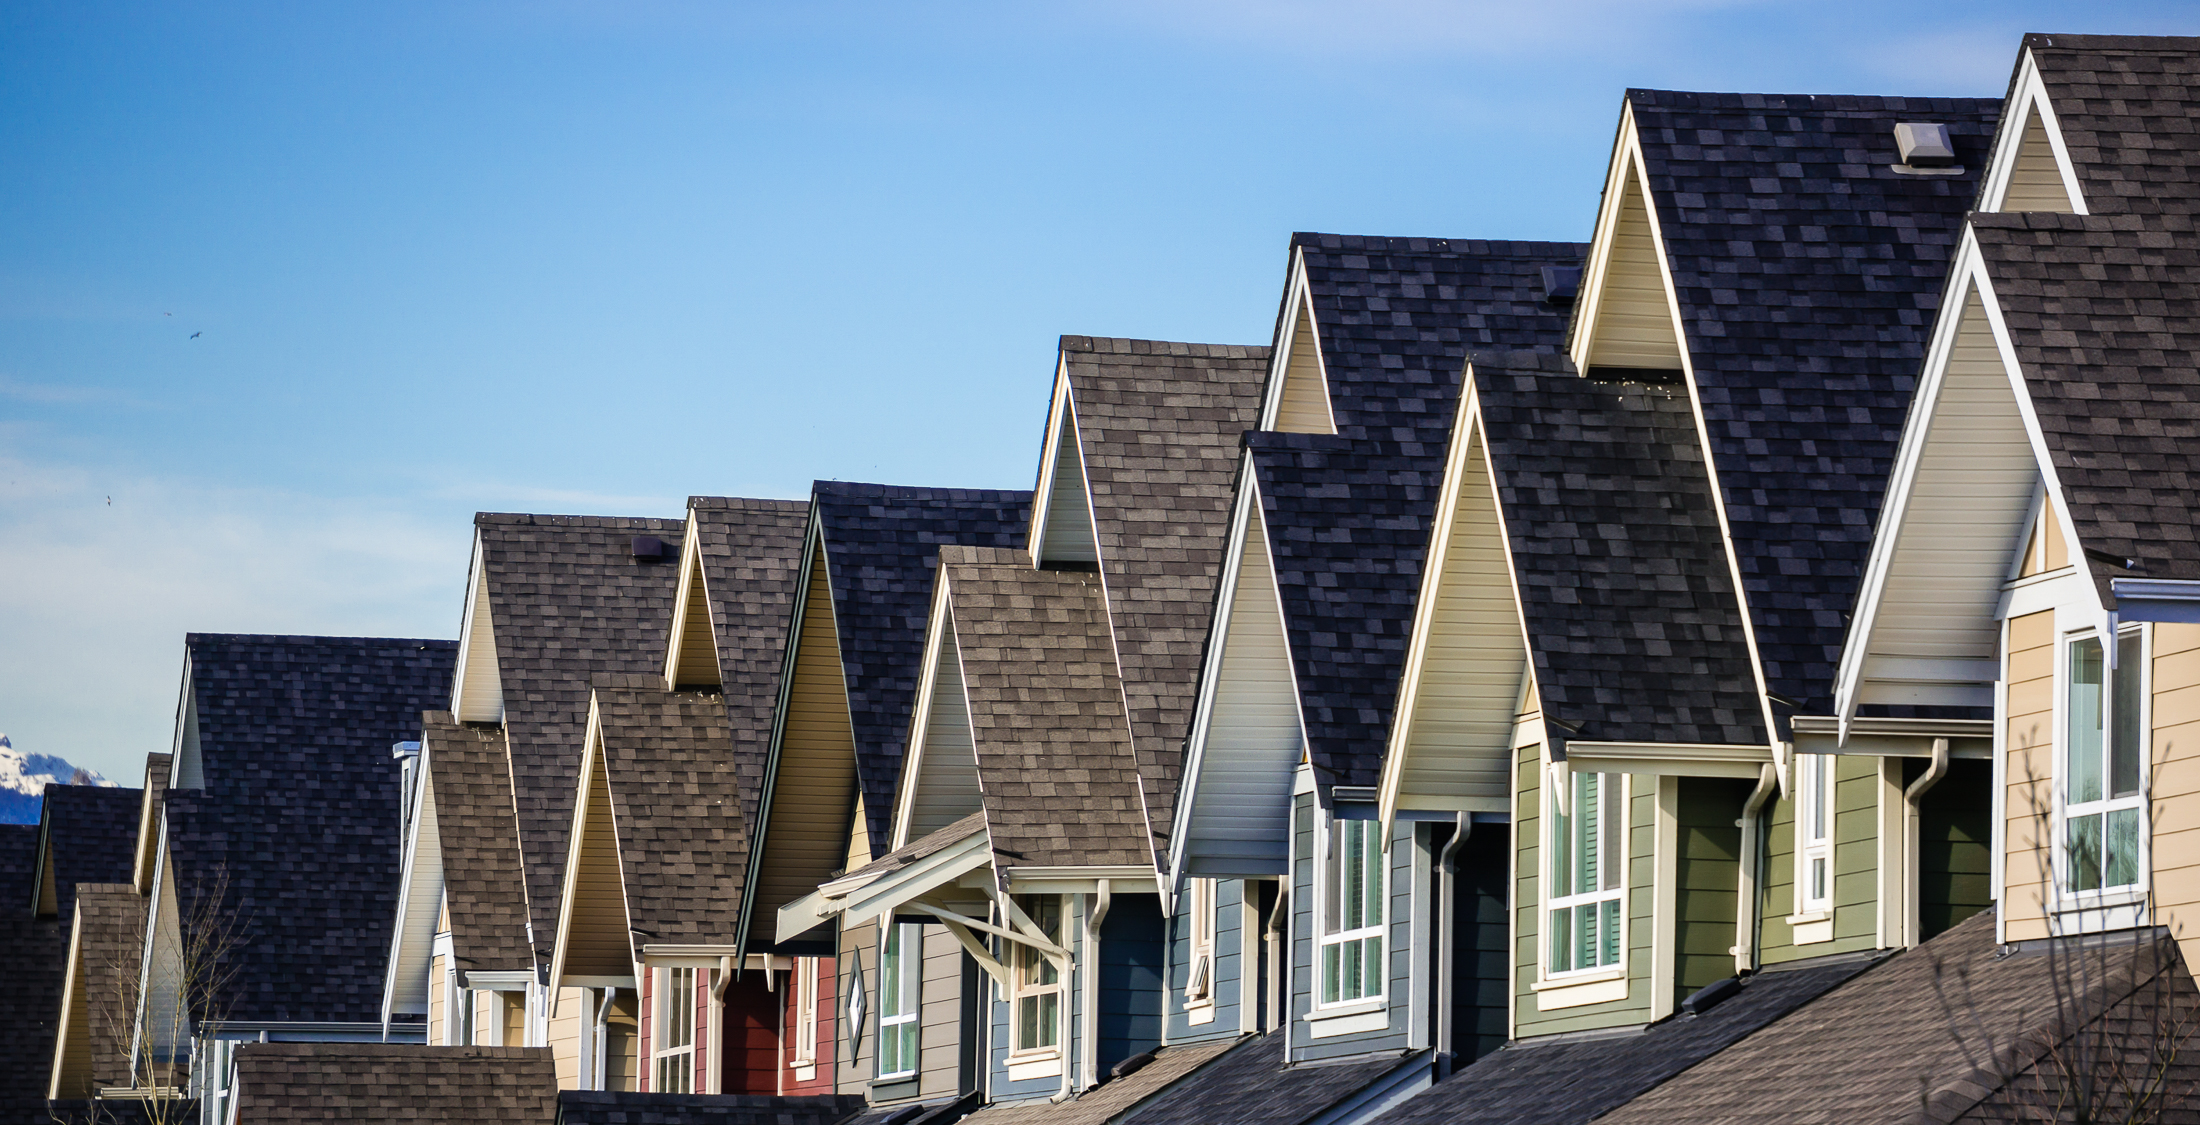 Top 20 Cities Where Home Prices Are Skyrocketing